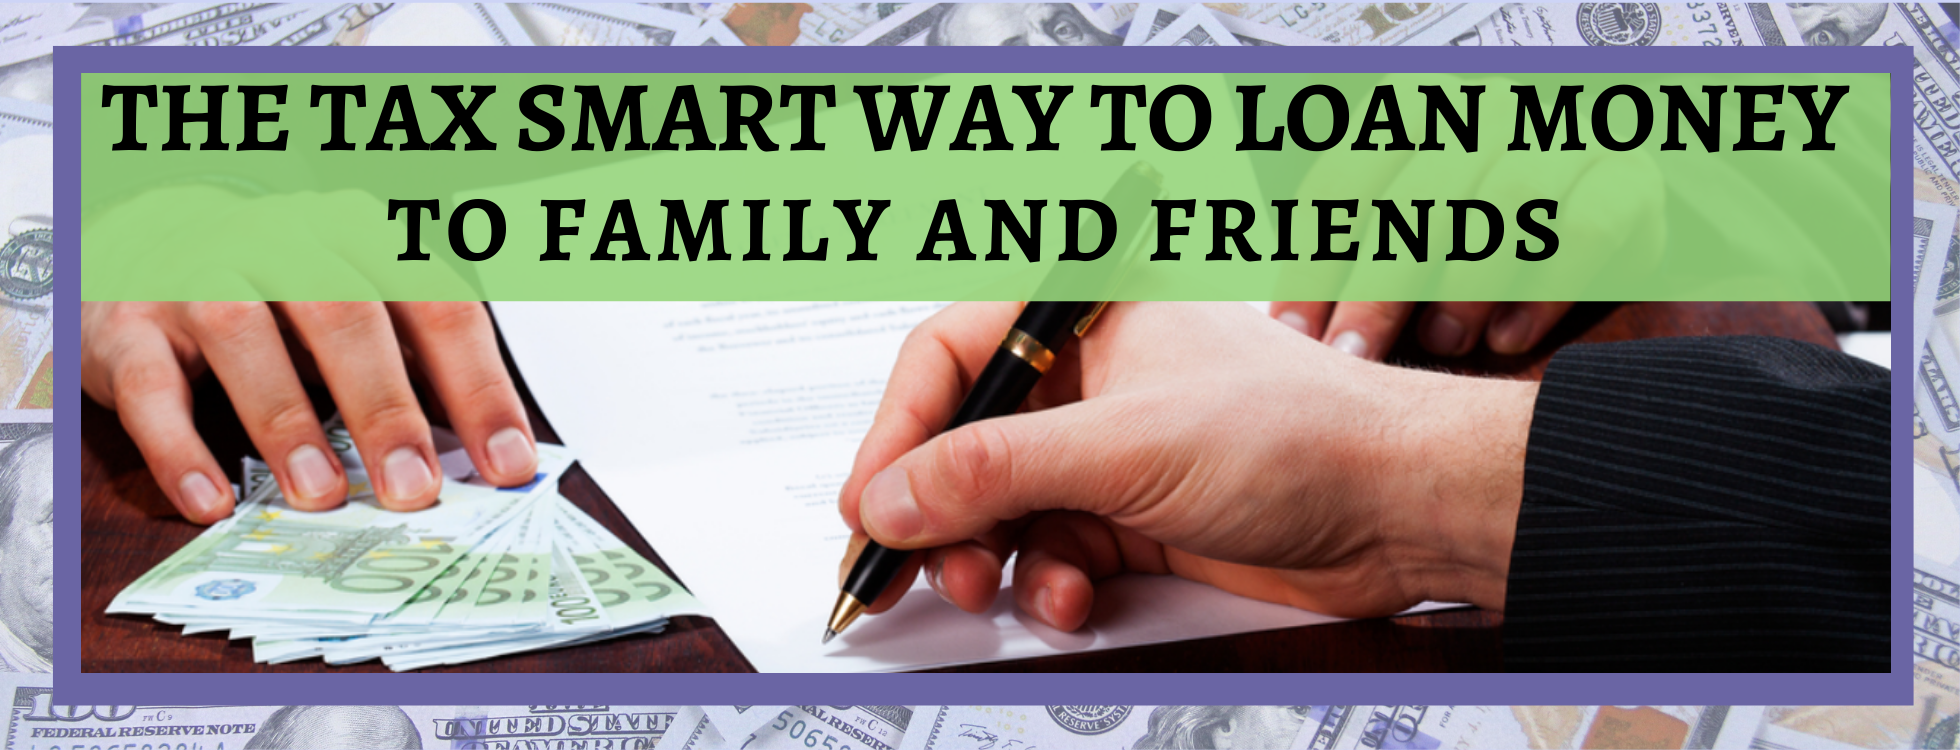 The tax smart way to loan money